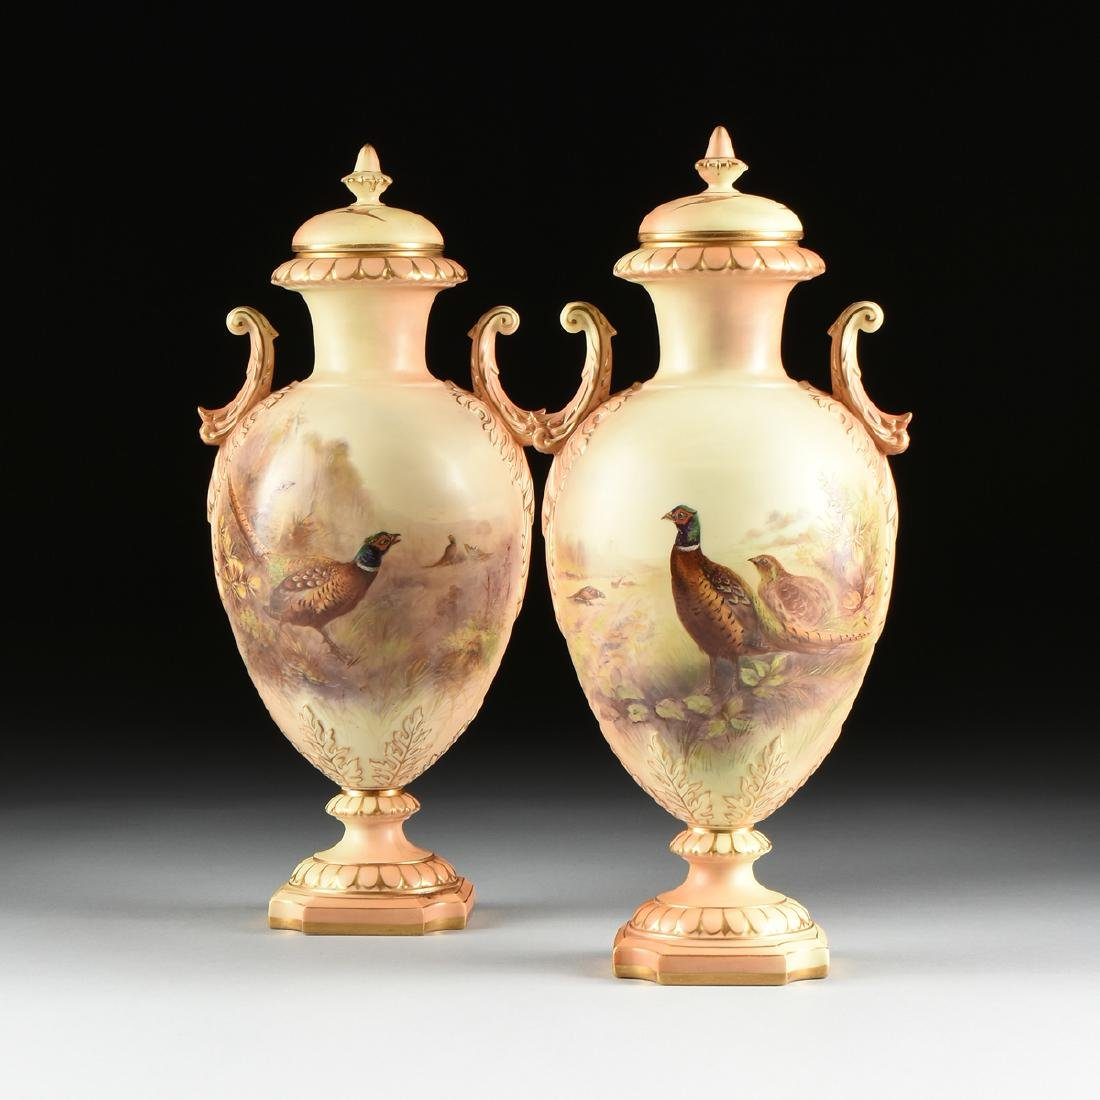 A PAIR OF GRAINGER & CO. ROYAL CHINA WORKS GILT AND